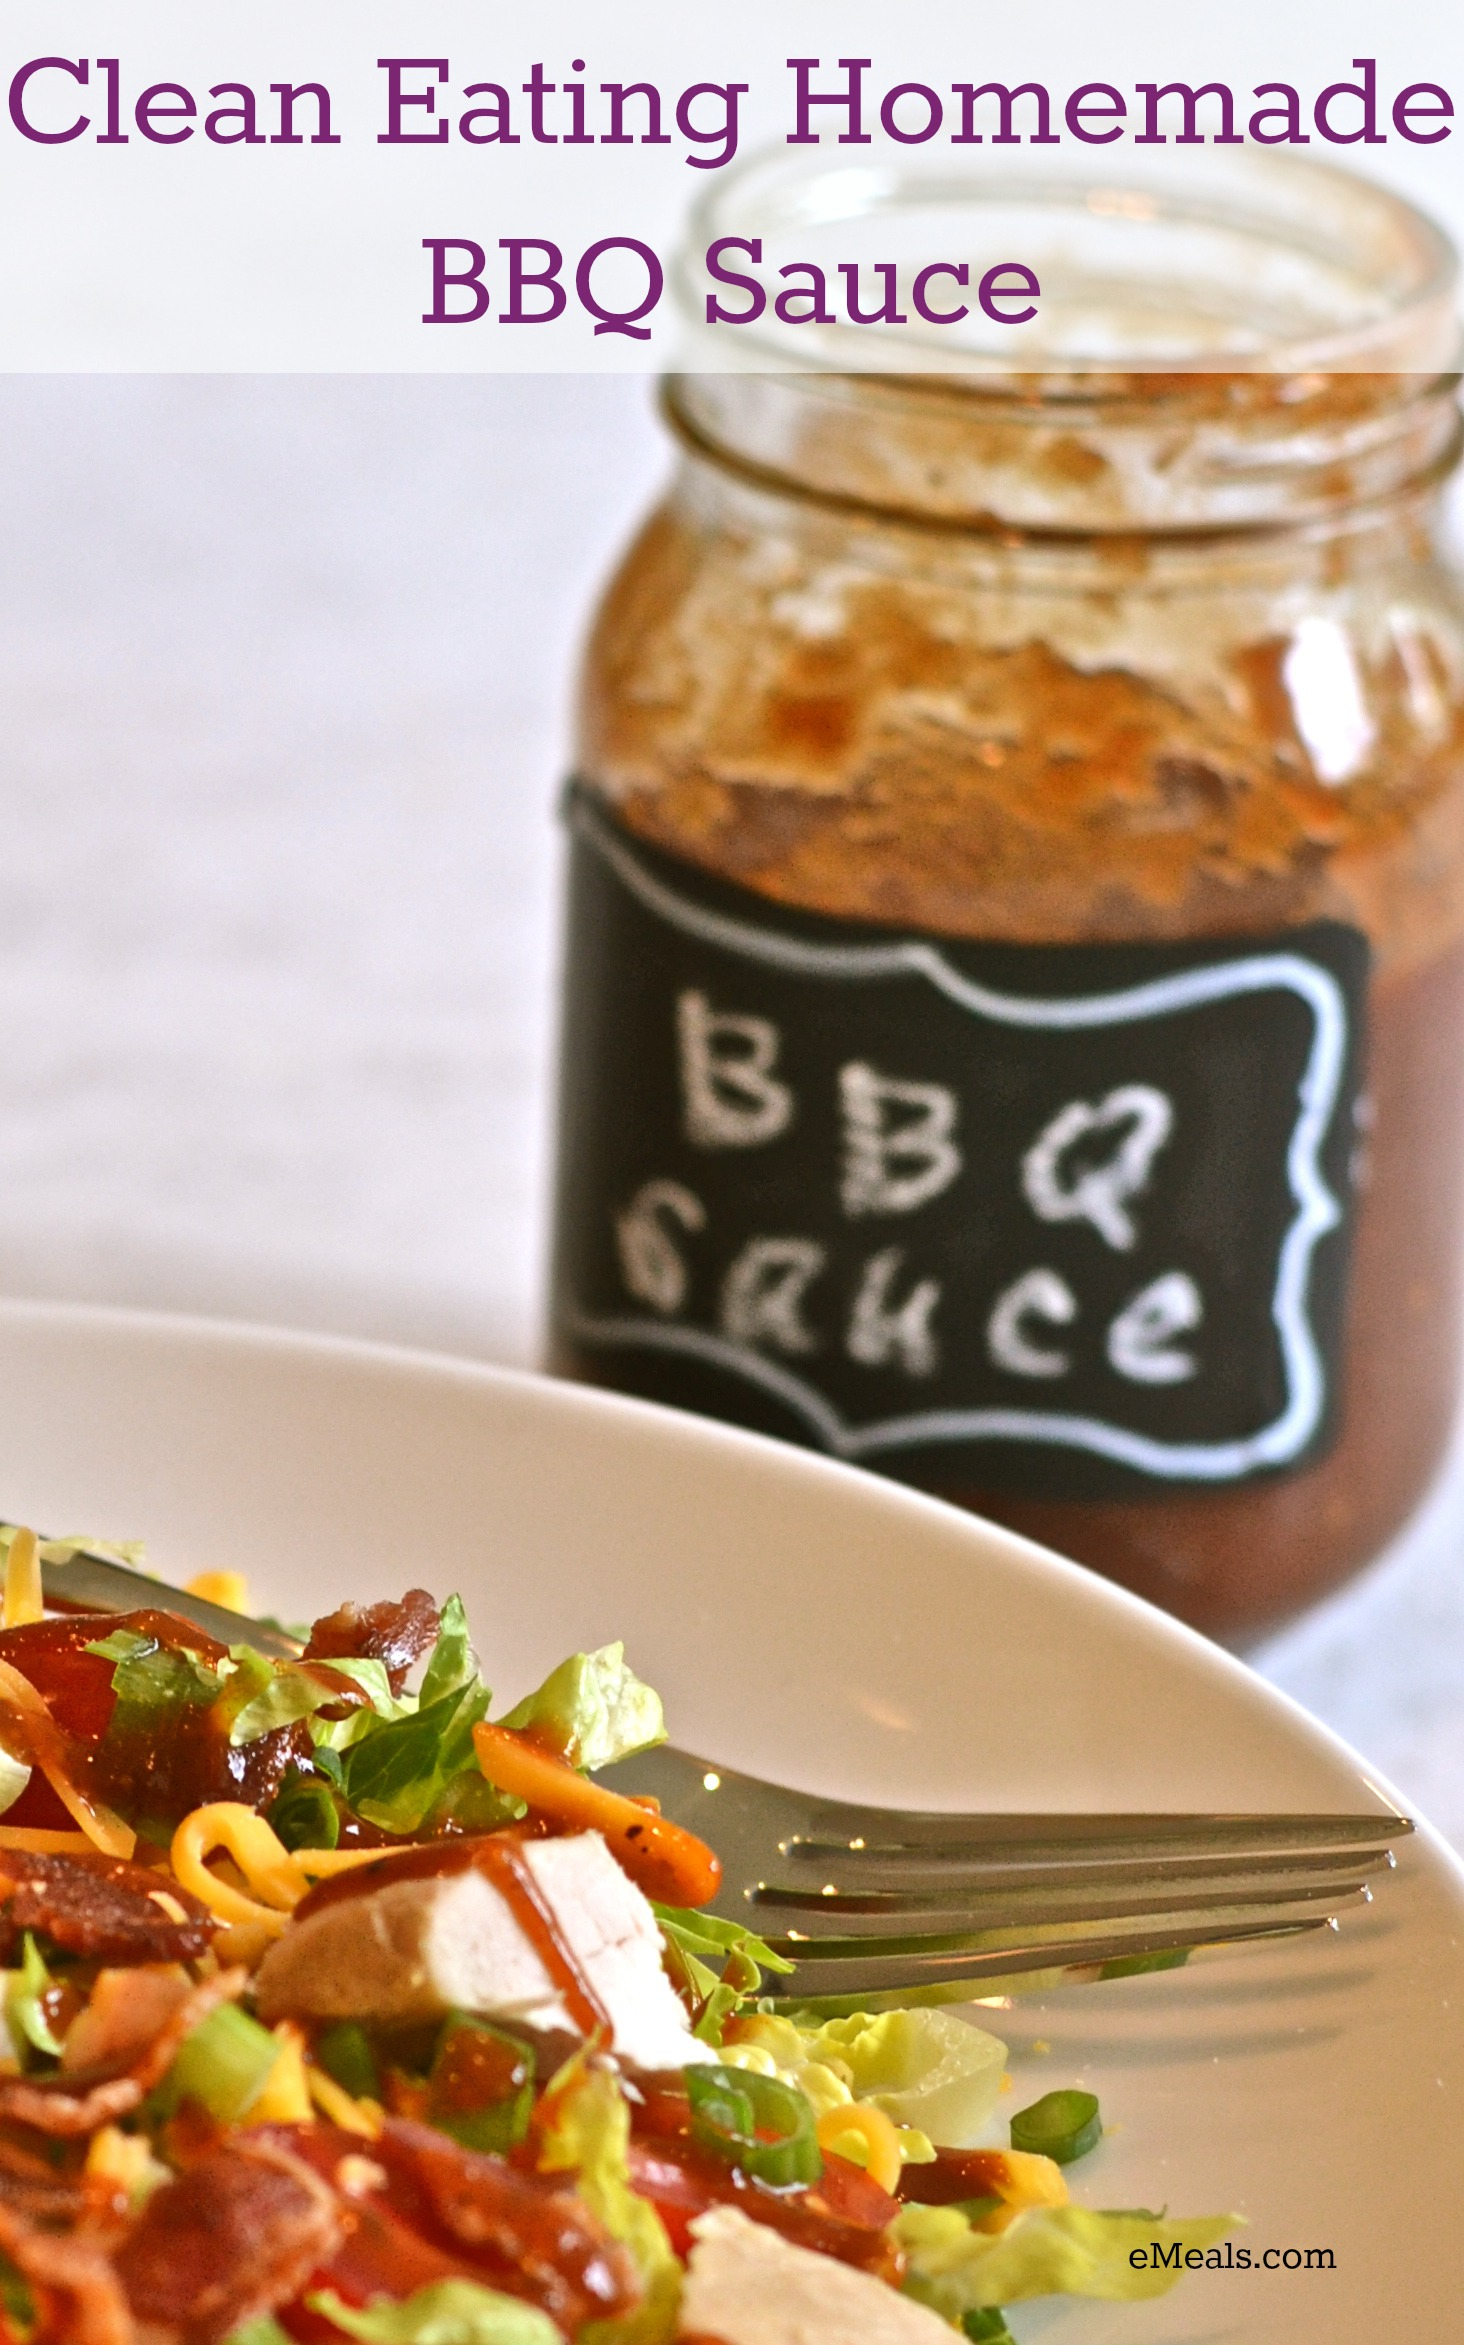 Clean Eating Homemade Barbecue Sauce